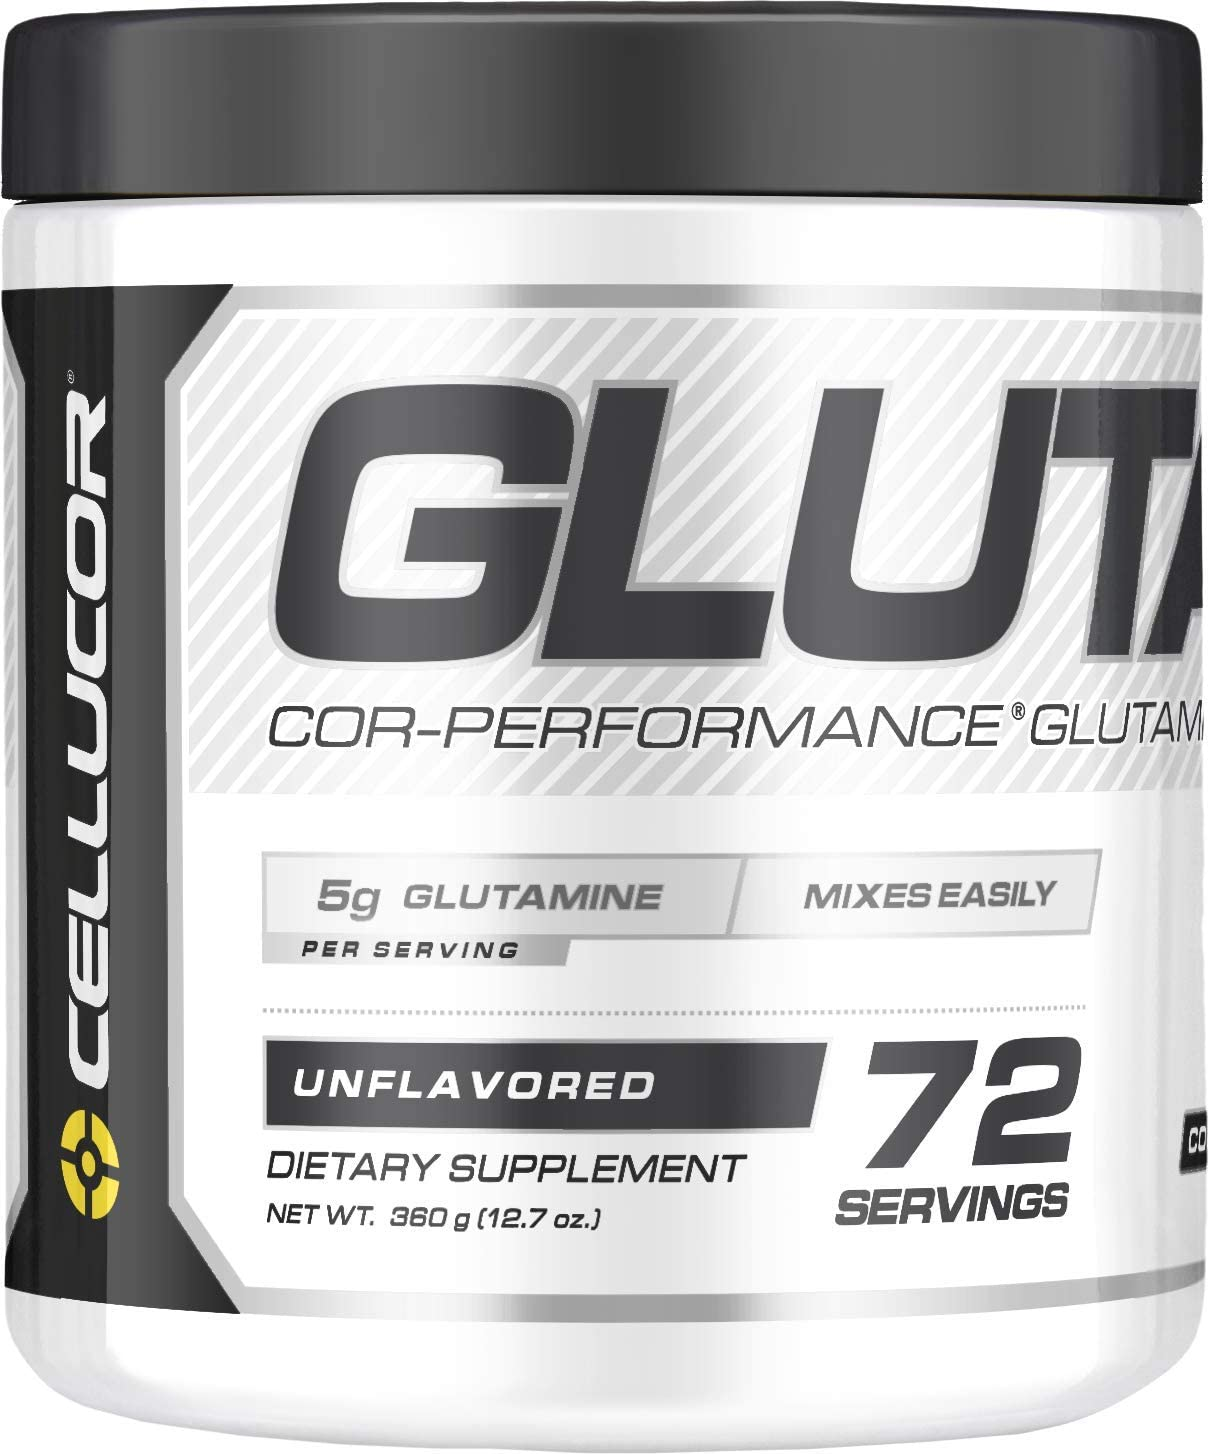 Cellucor Glutamine Powder, Post Workout Recovery with Glutamine Supplement, Cor-Performance Series, Unflavored, 72 Servings